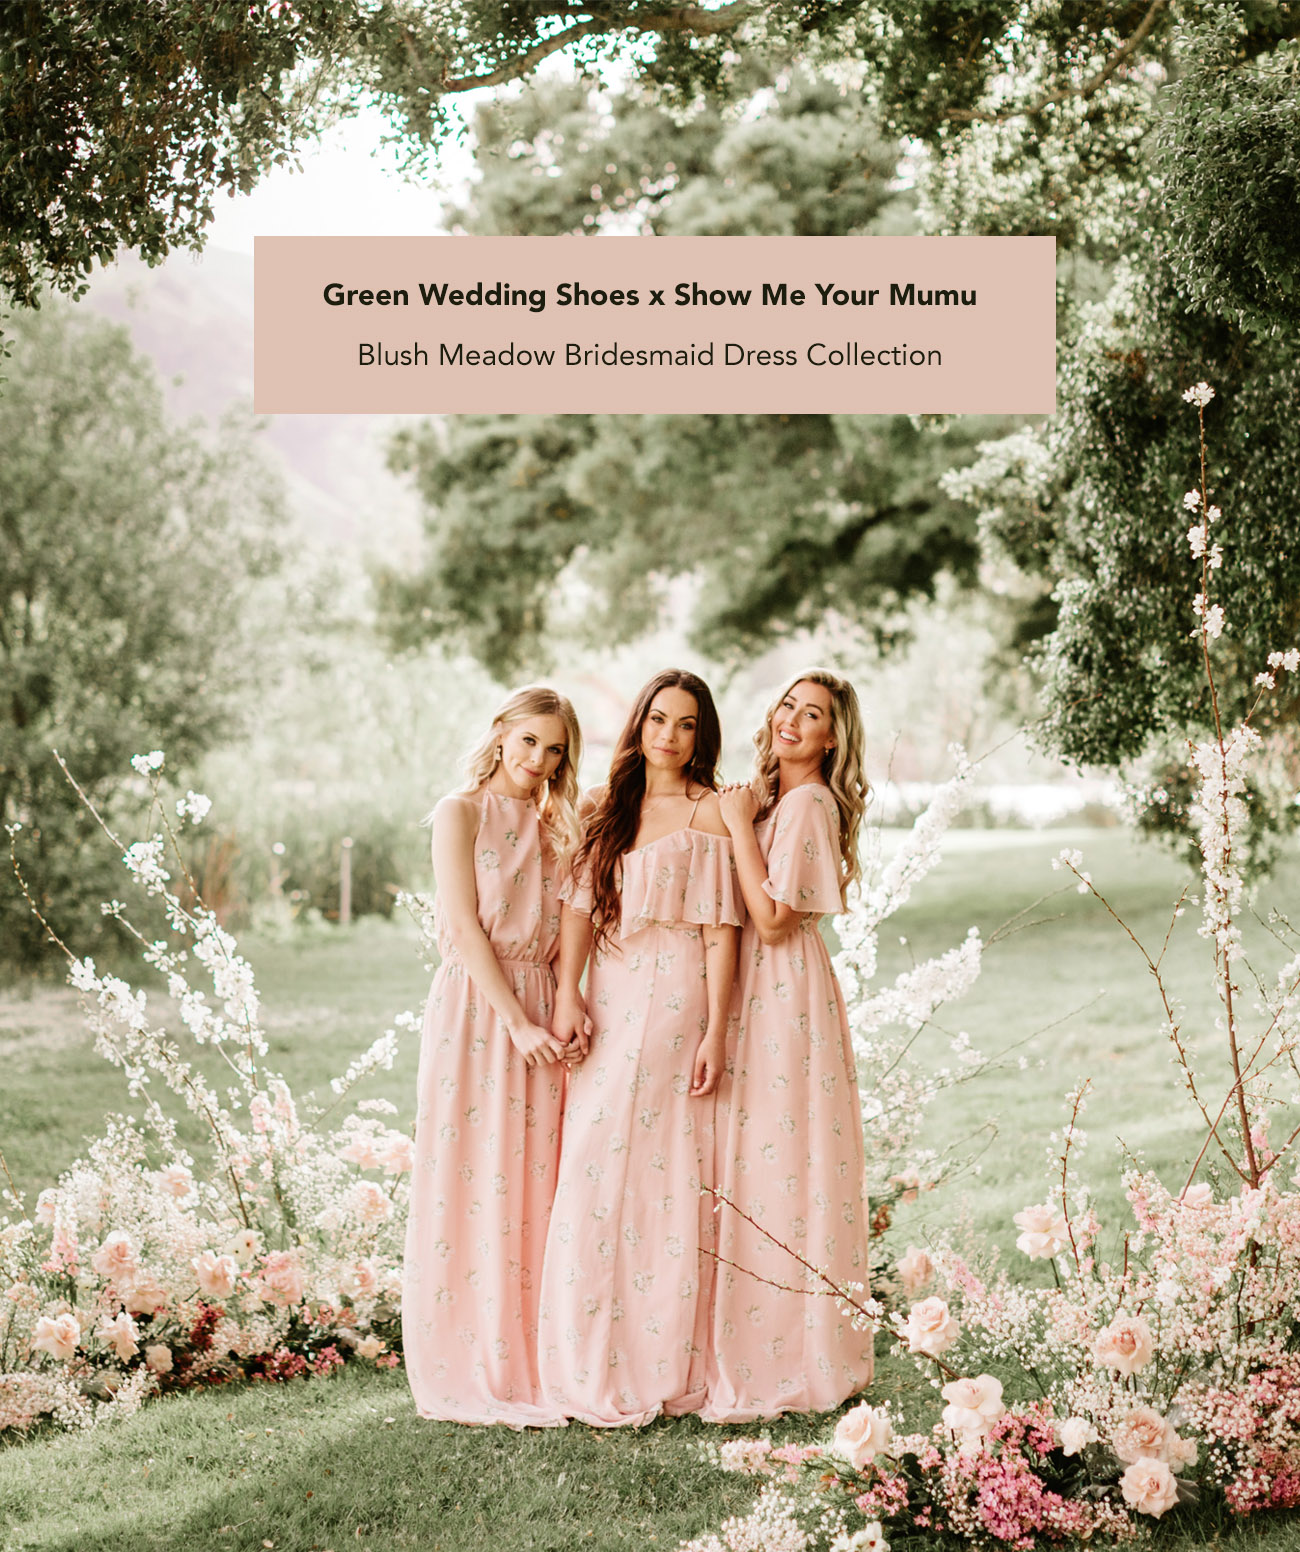 GWS x Show Me Your Mumu Blush Meadow Bridesmaids Collection